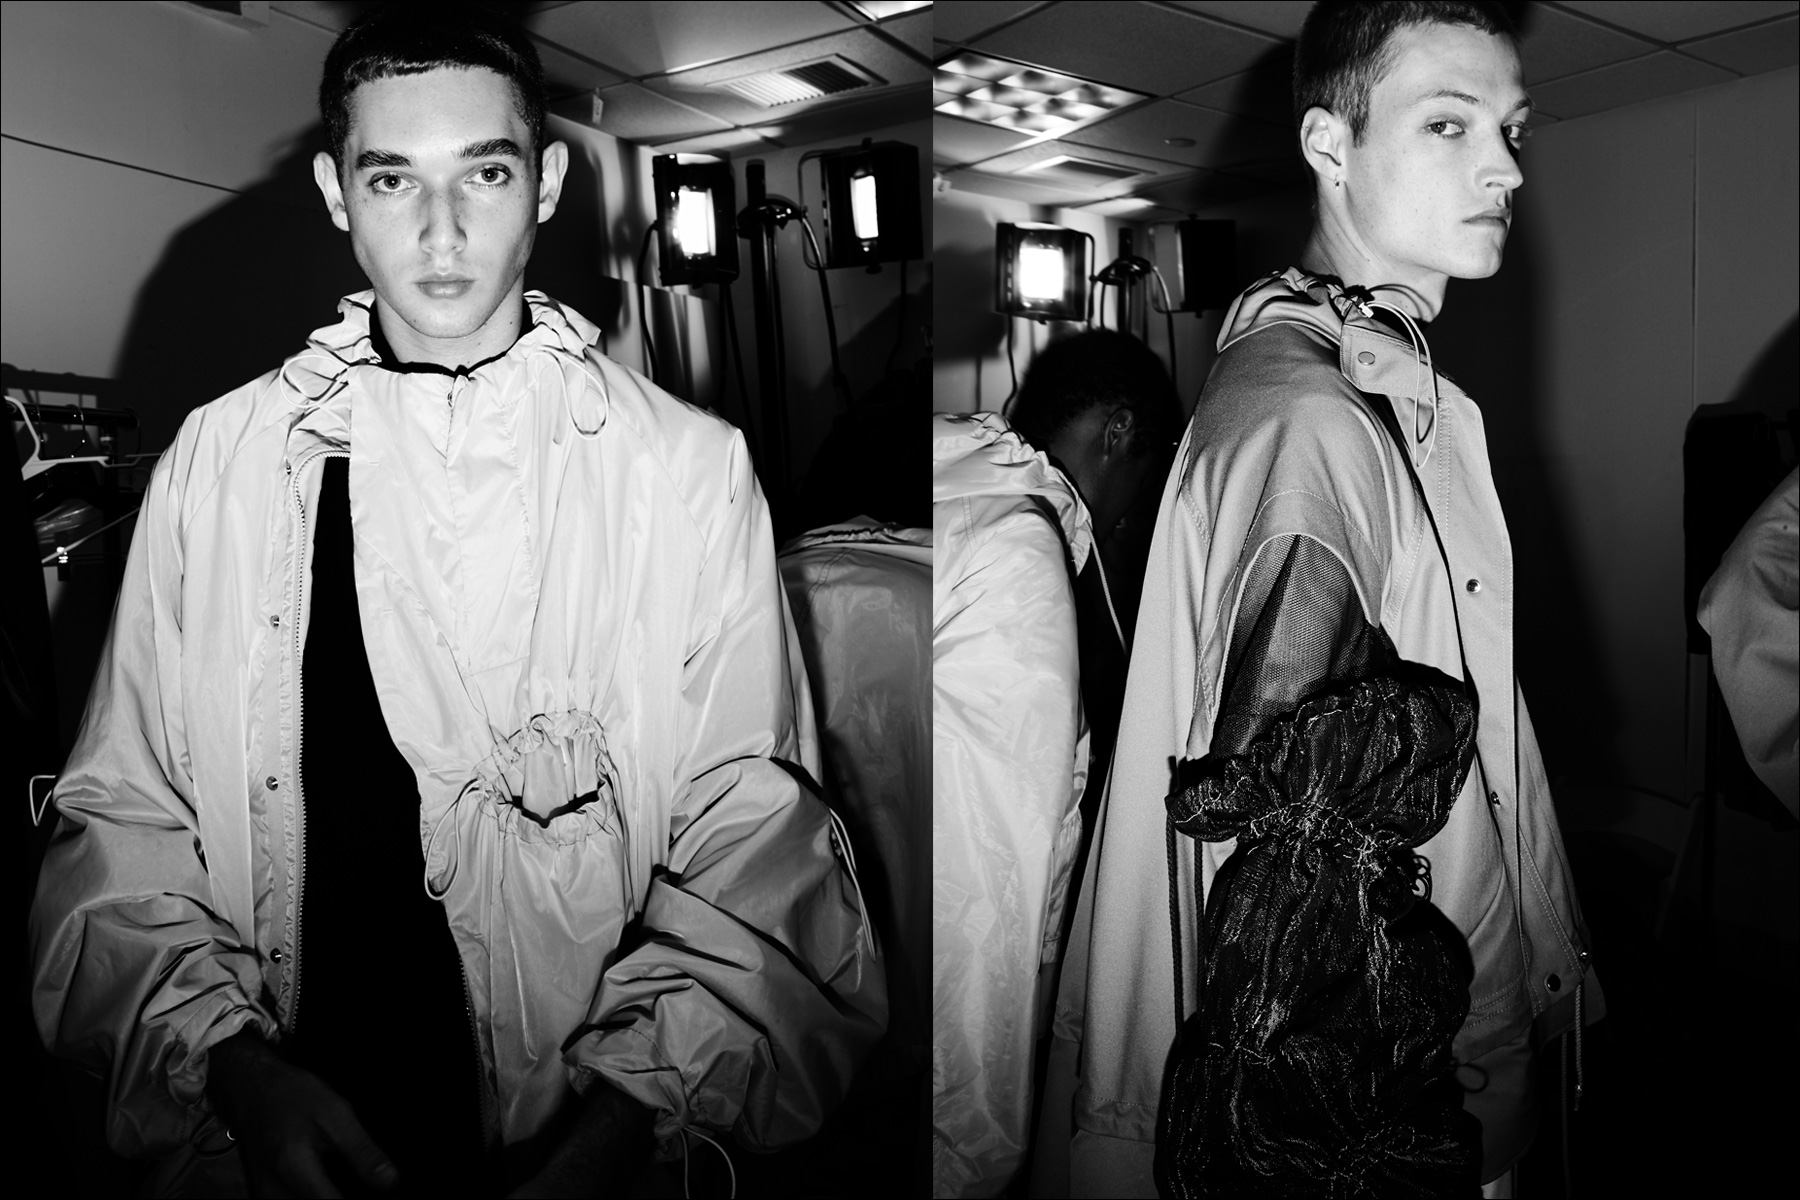 Gathered details on cutting edge menswear, photographed backstage at the Feng Chen Wang collection. Photography by Alexander Thompson for Ponyboy magazine NY.